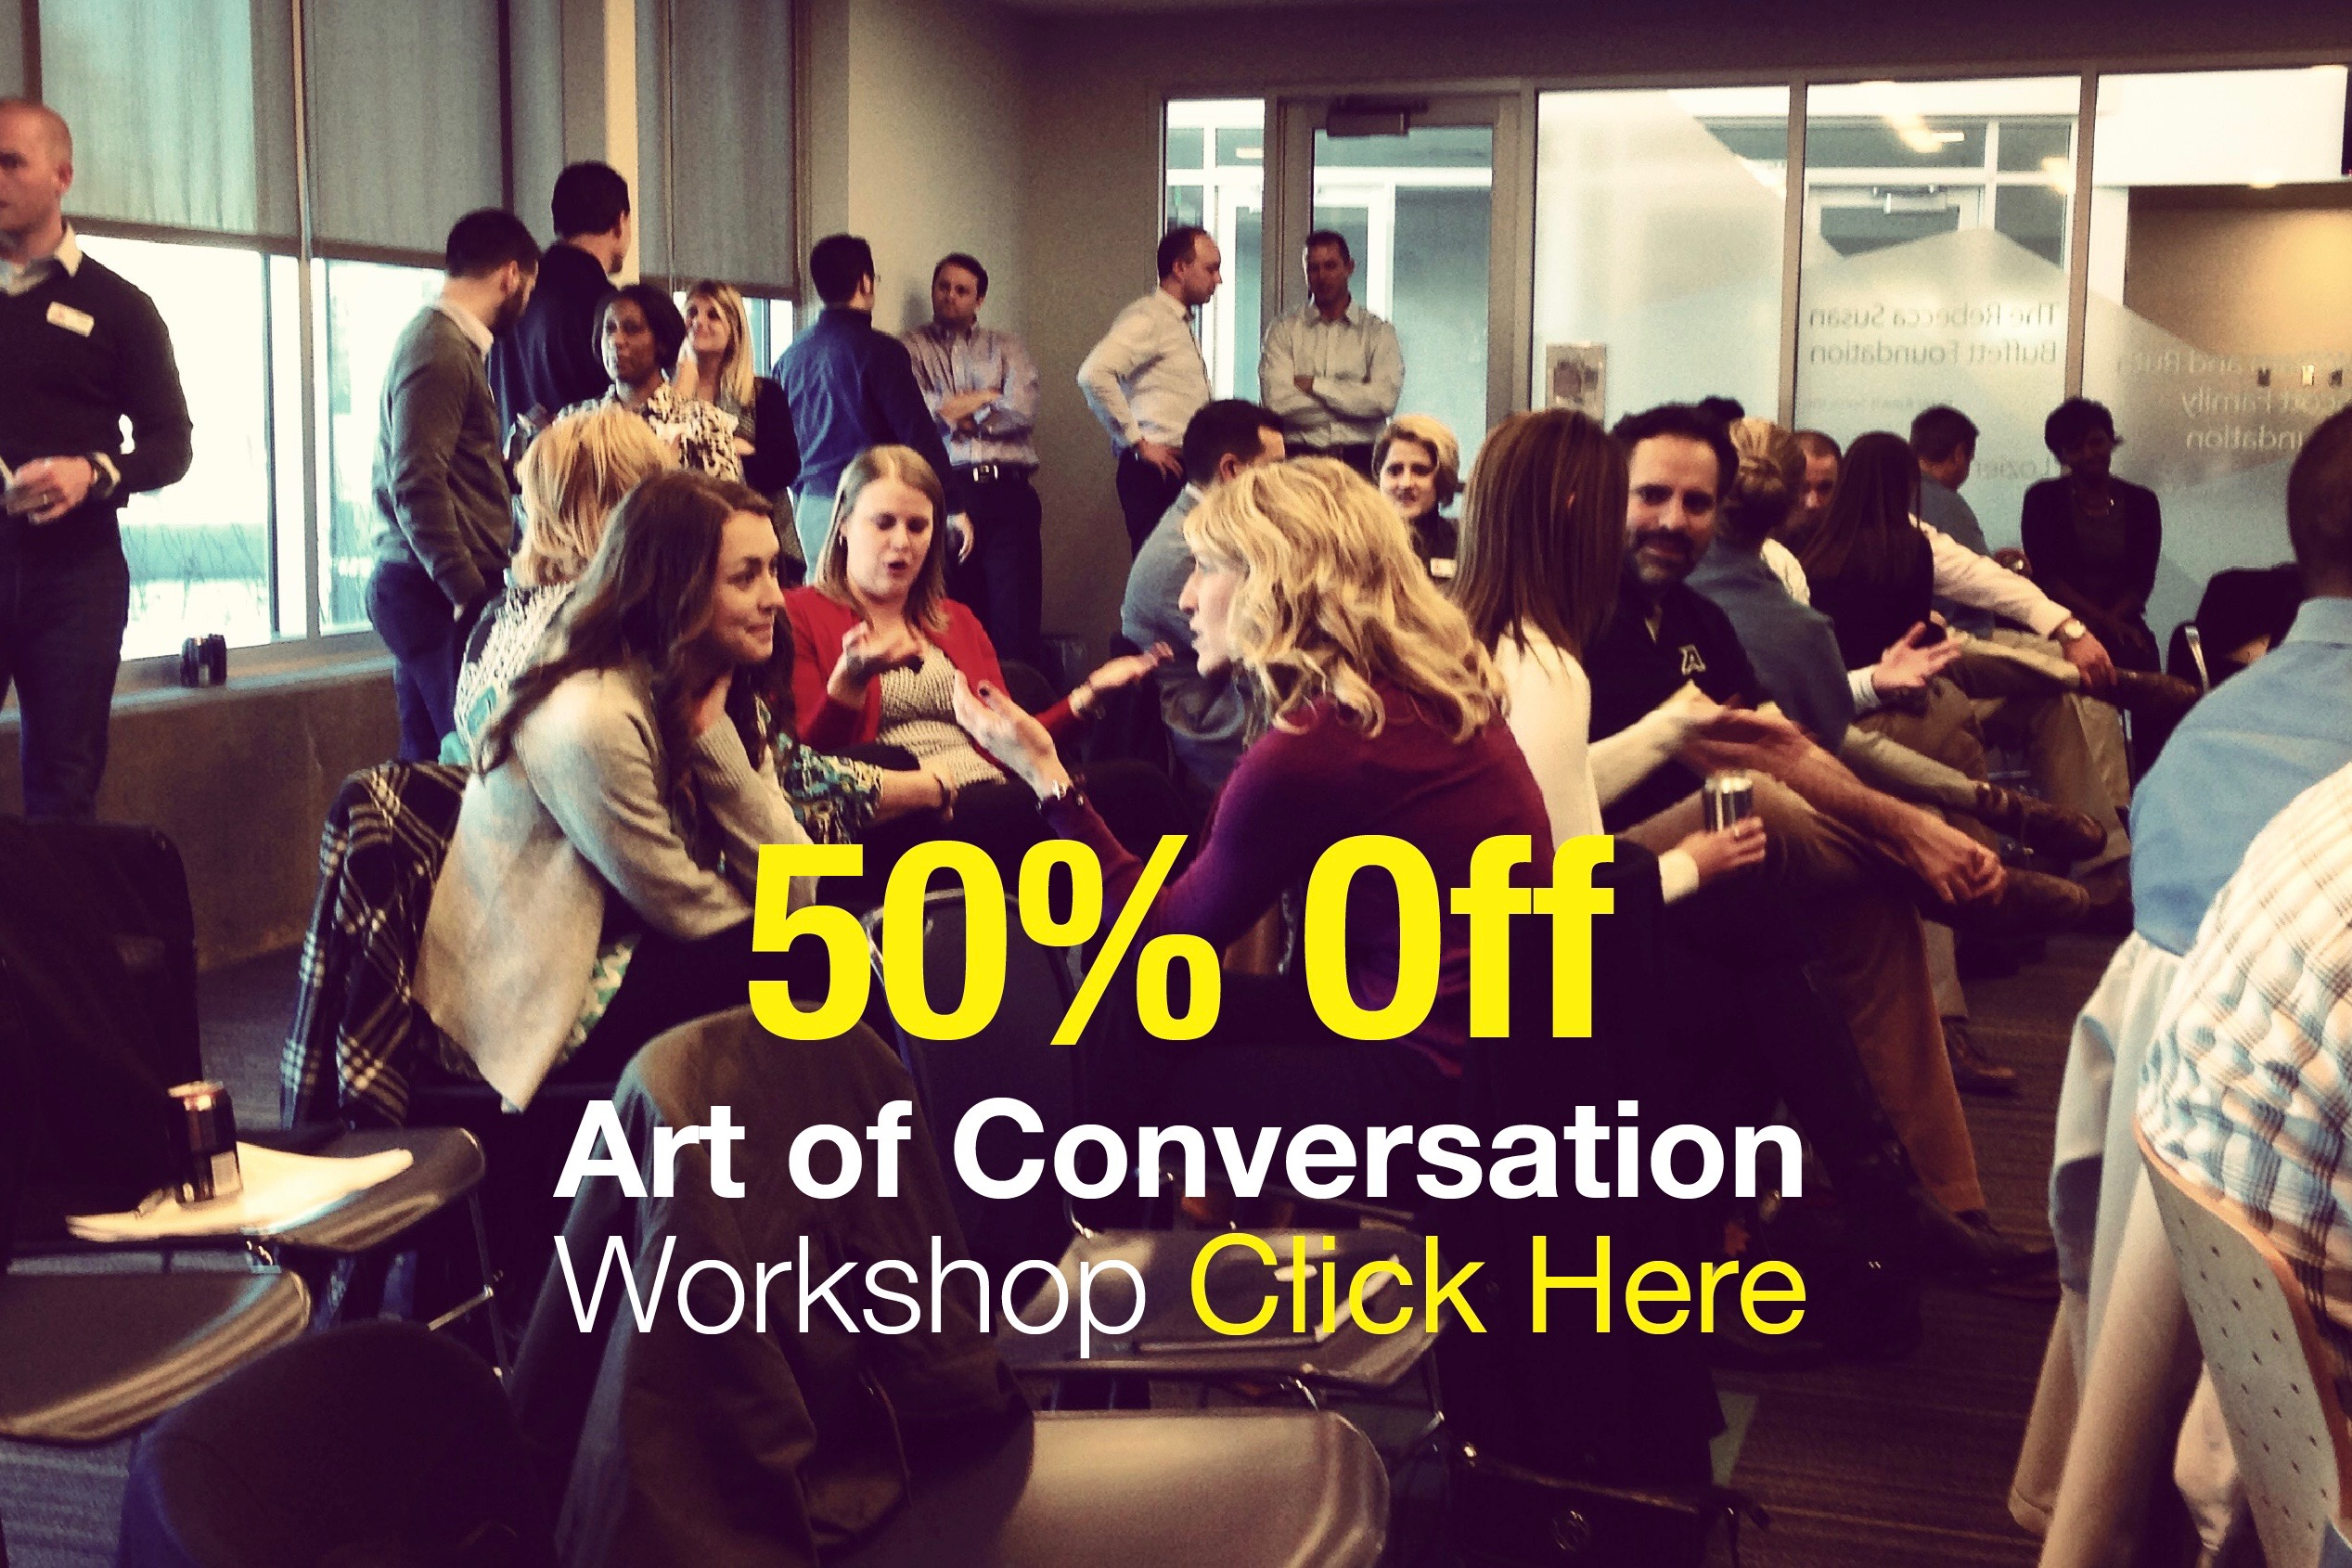 50% Off the Art of Conversation Workshop